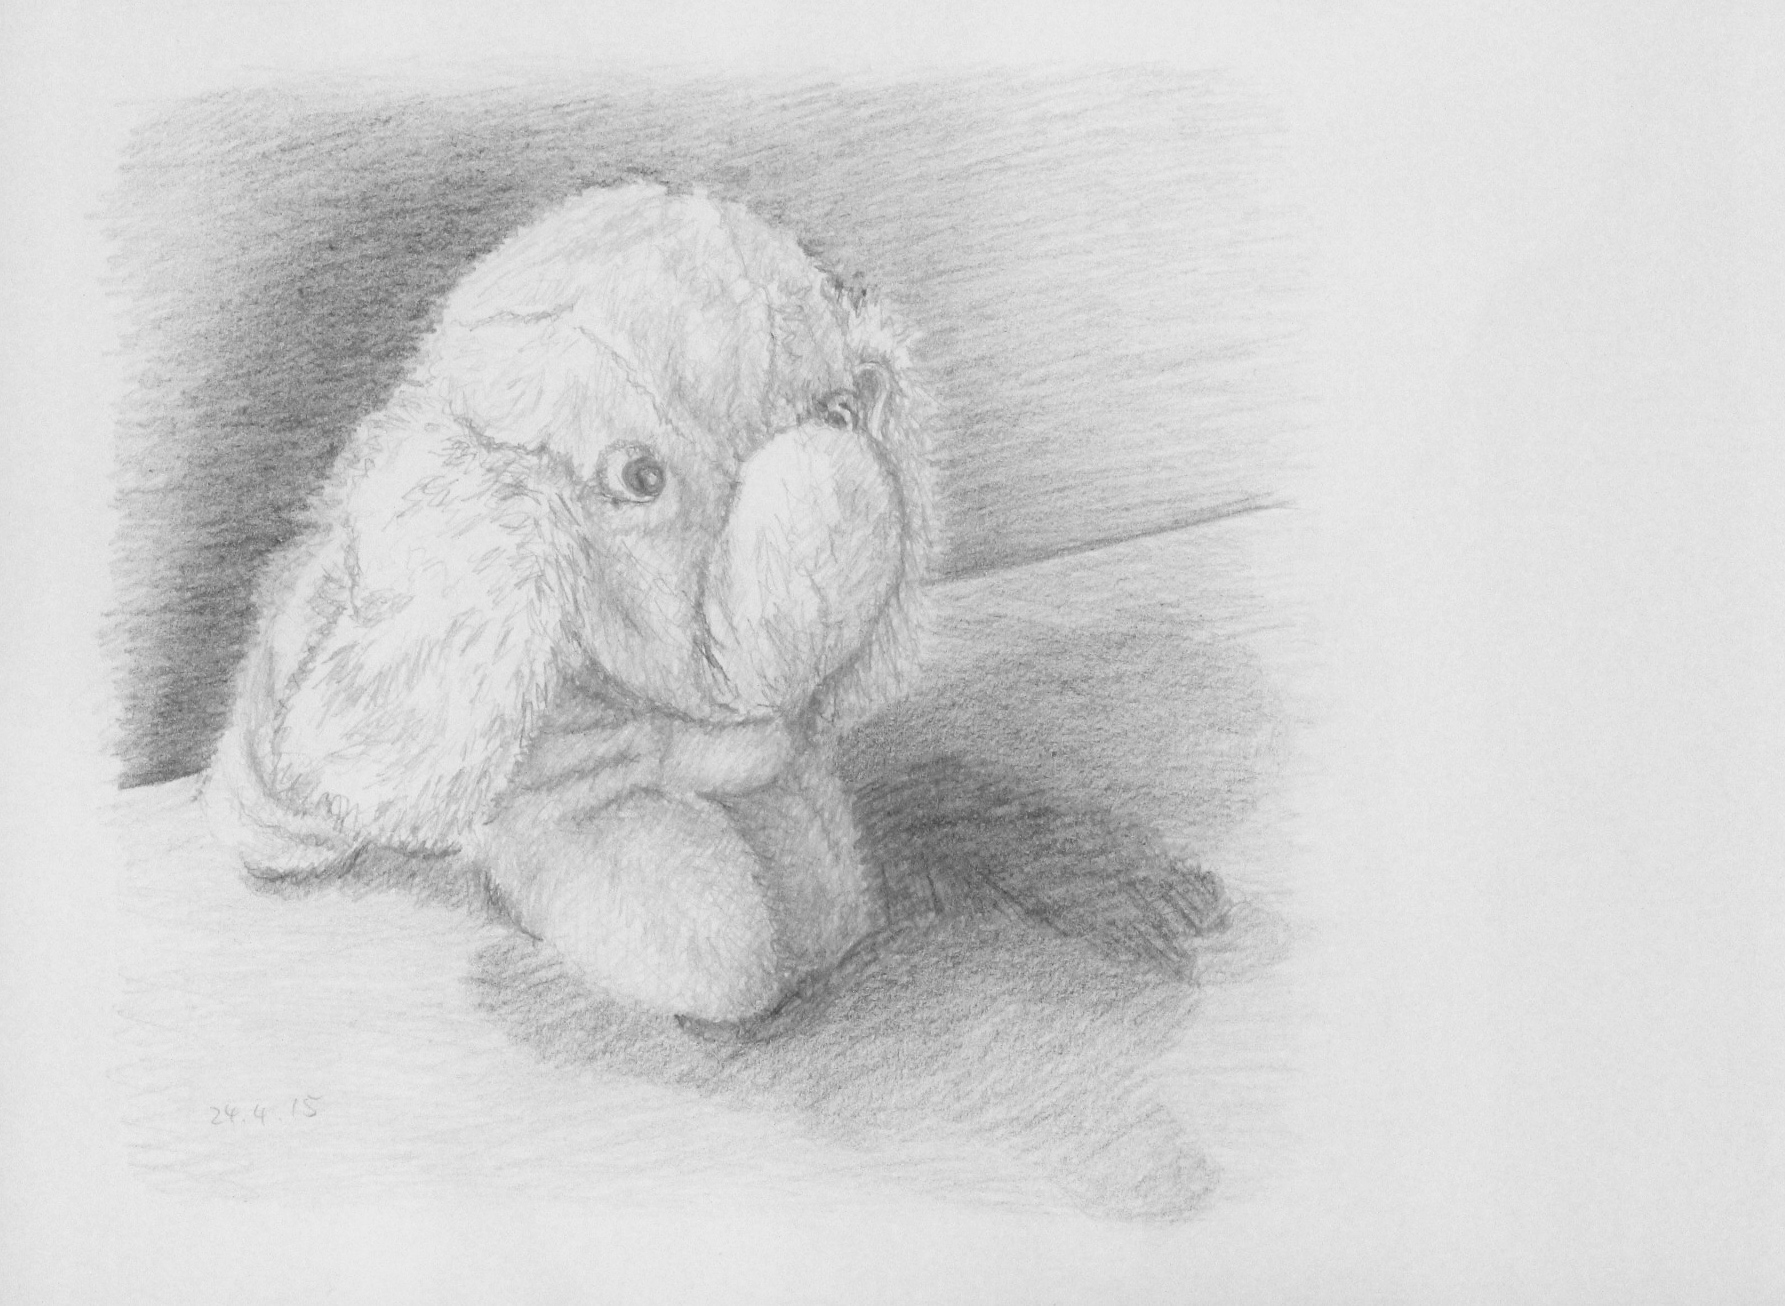 Pencil Portrait of an Elephant, ArtHenning